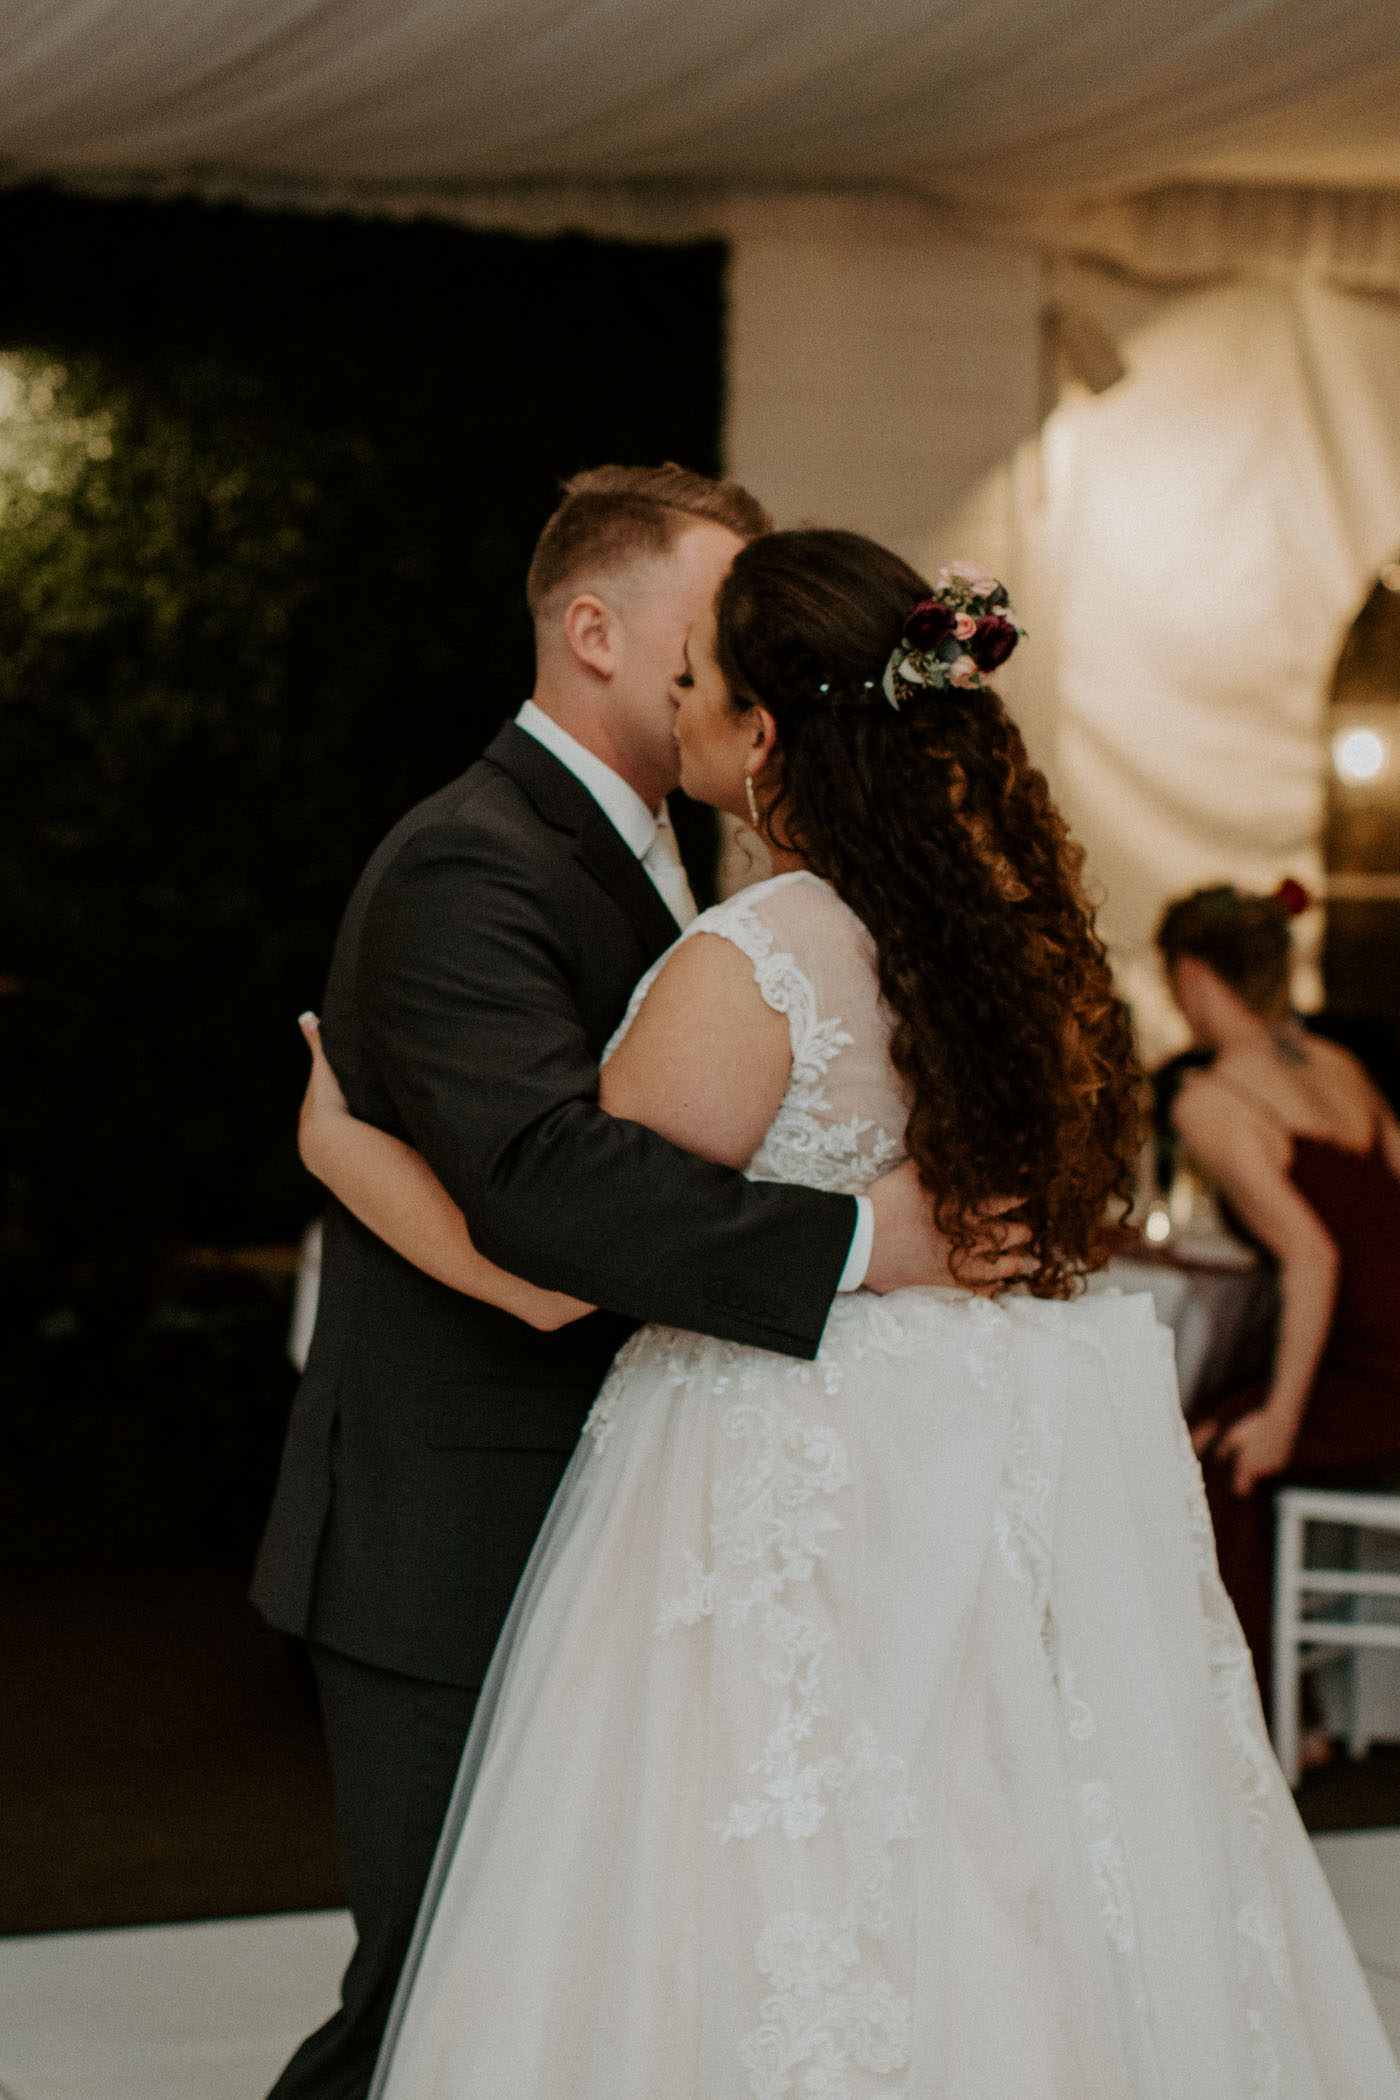 Romantic photo of bride and grooms first dance